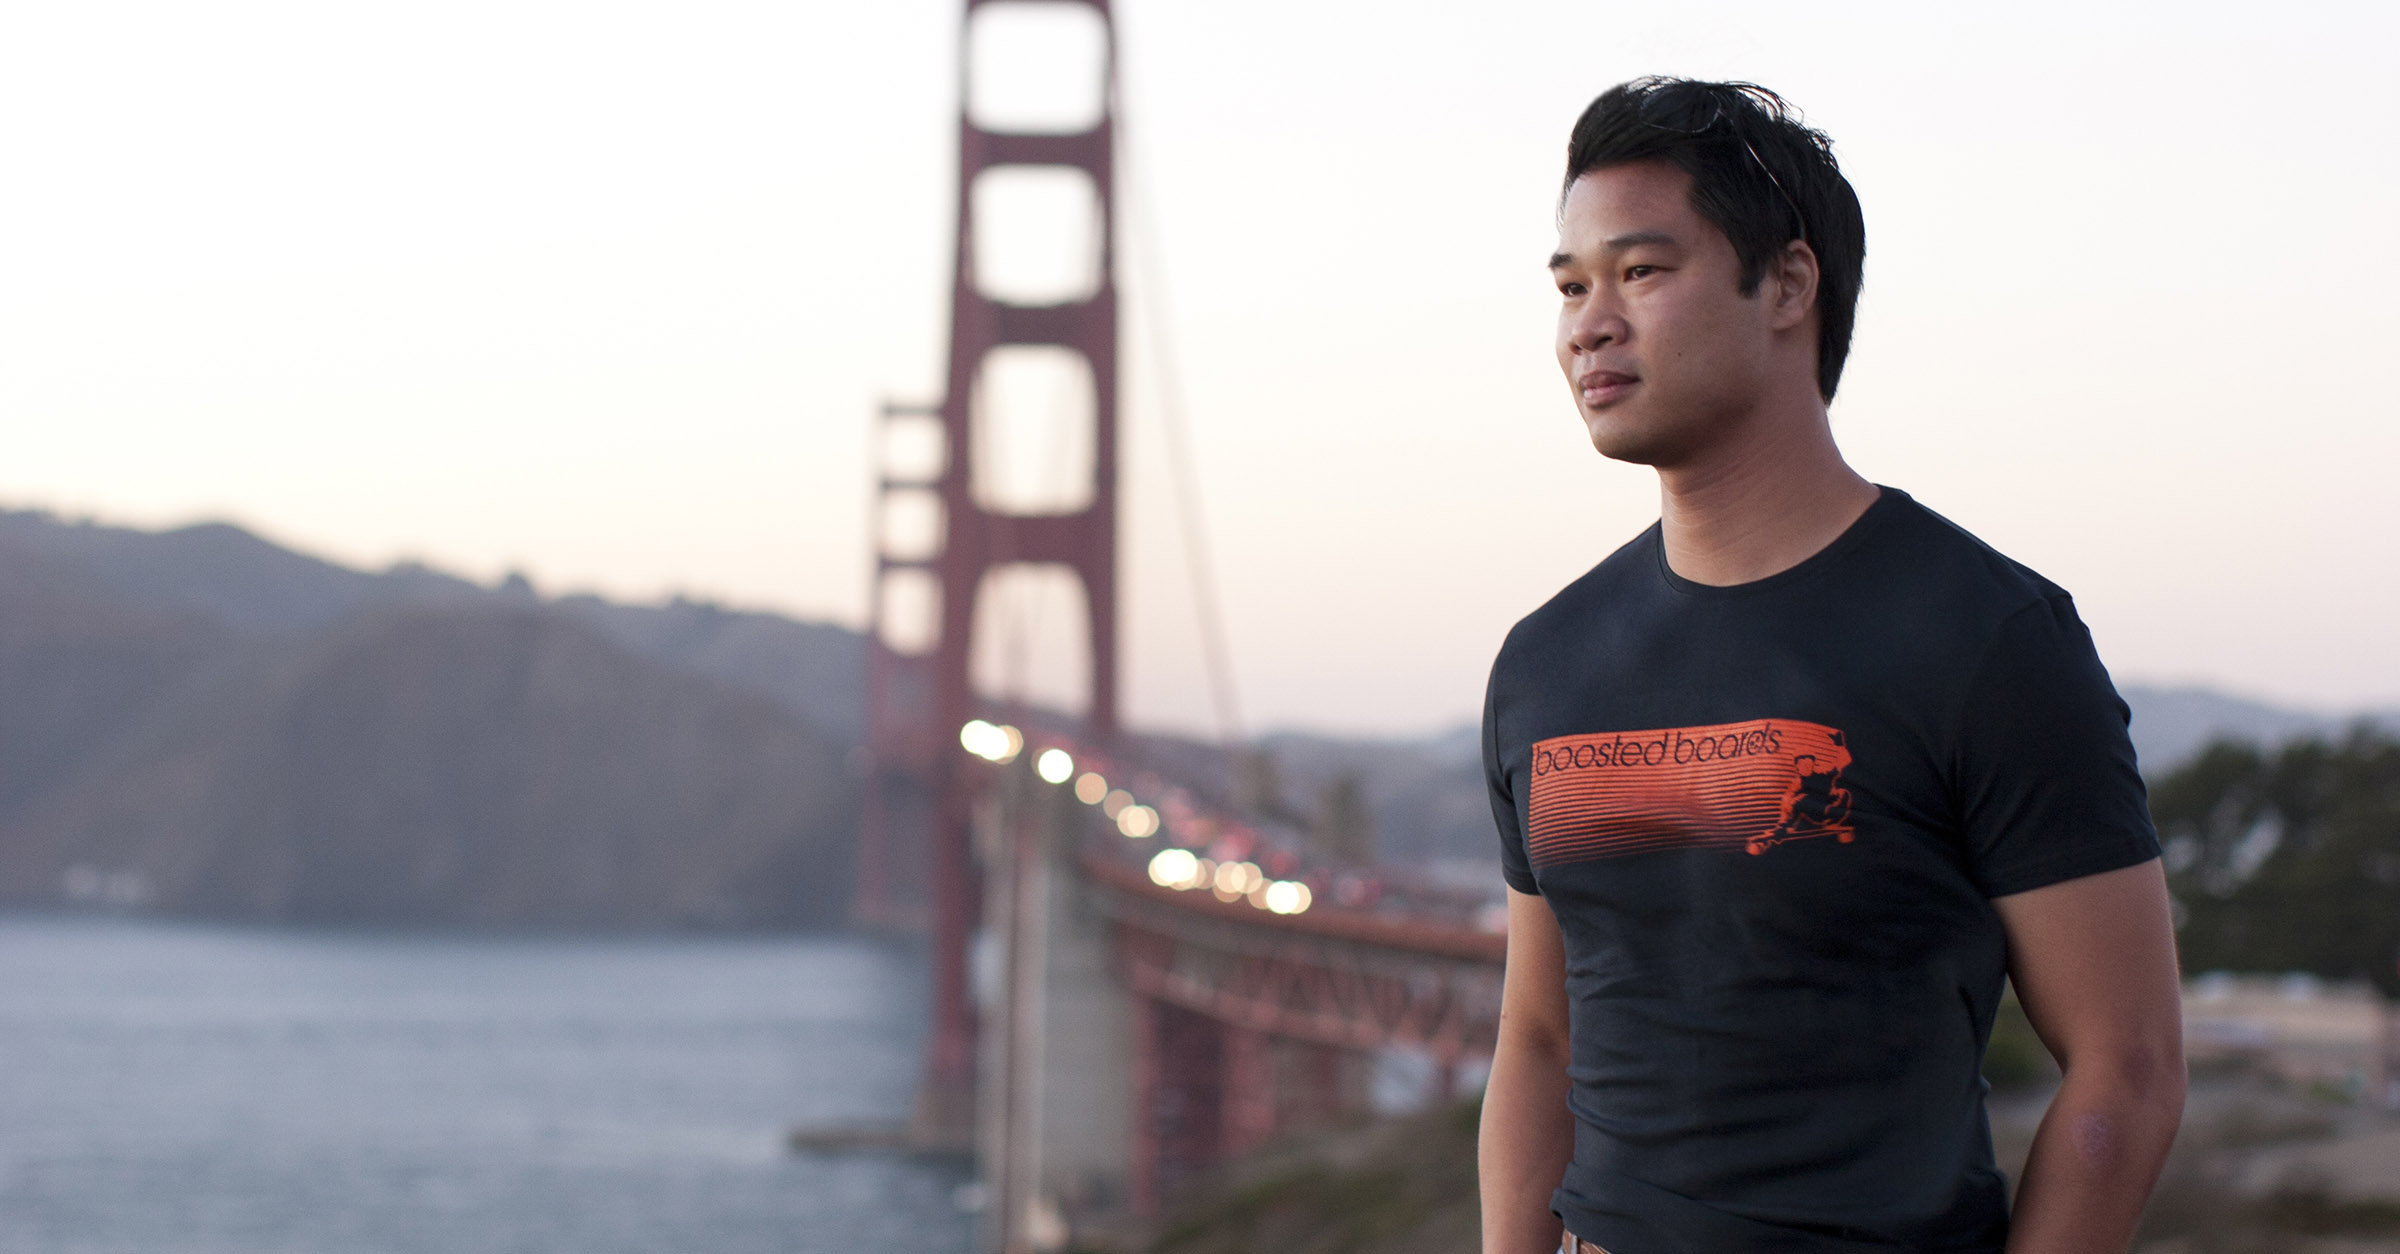 Matthew Tran and Boosted Boards: Building a Silicon Valley Startup as a Vietnamese American